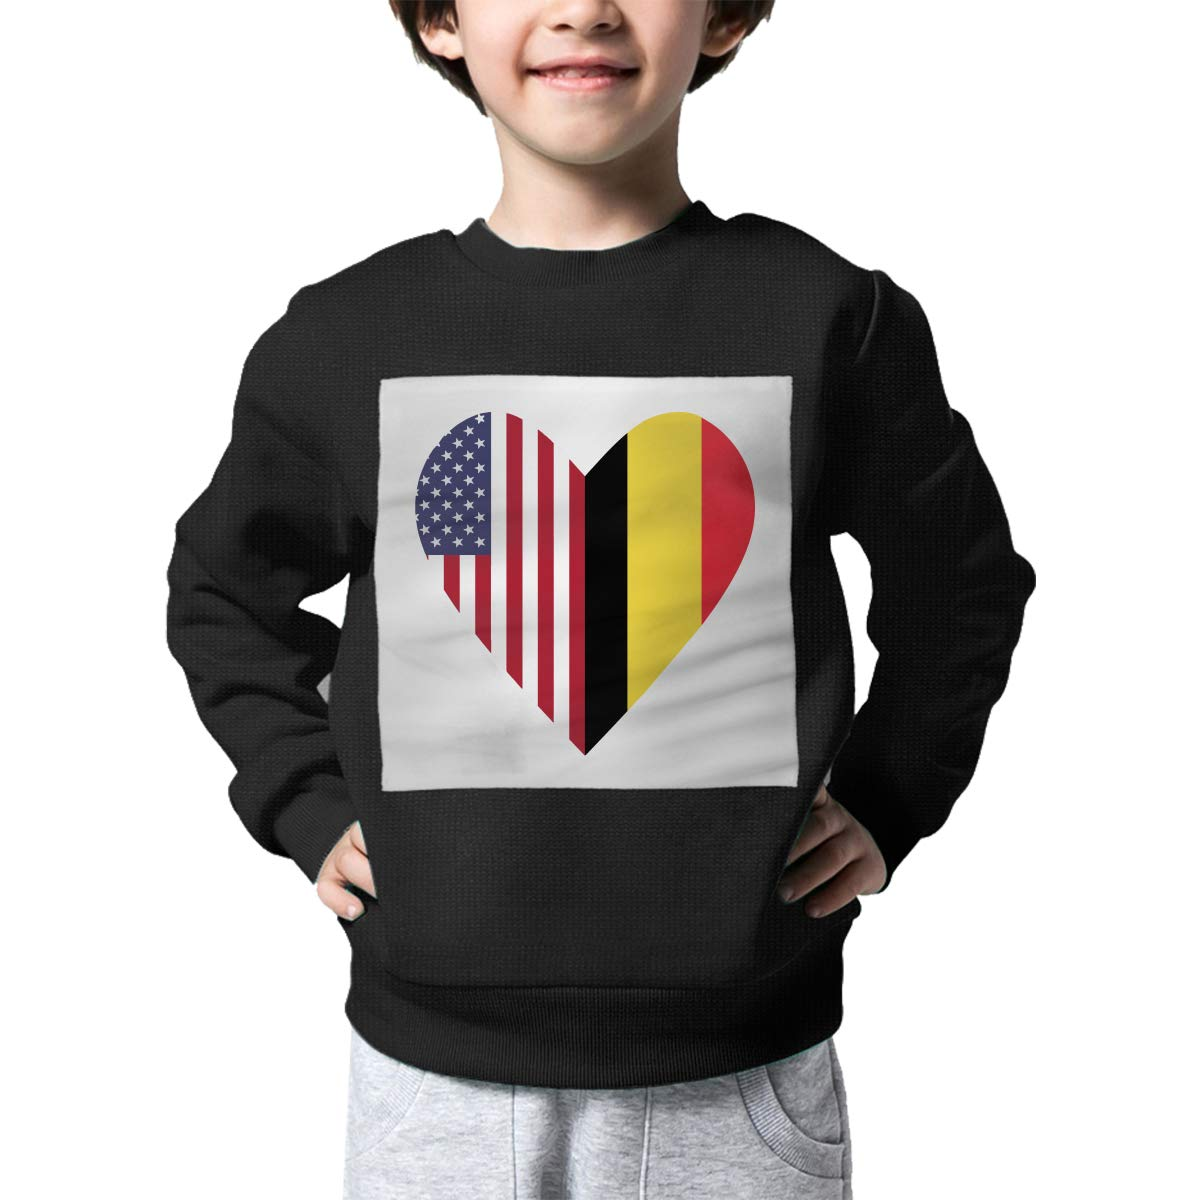 Childrens Half Belgium Flag Half USA Flag Love Heart Sweater Boys Girls Sweatshirt